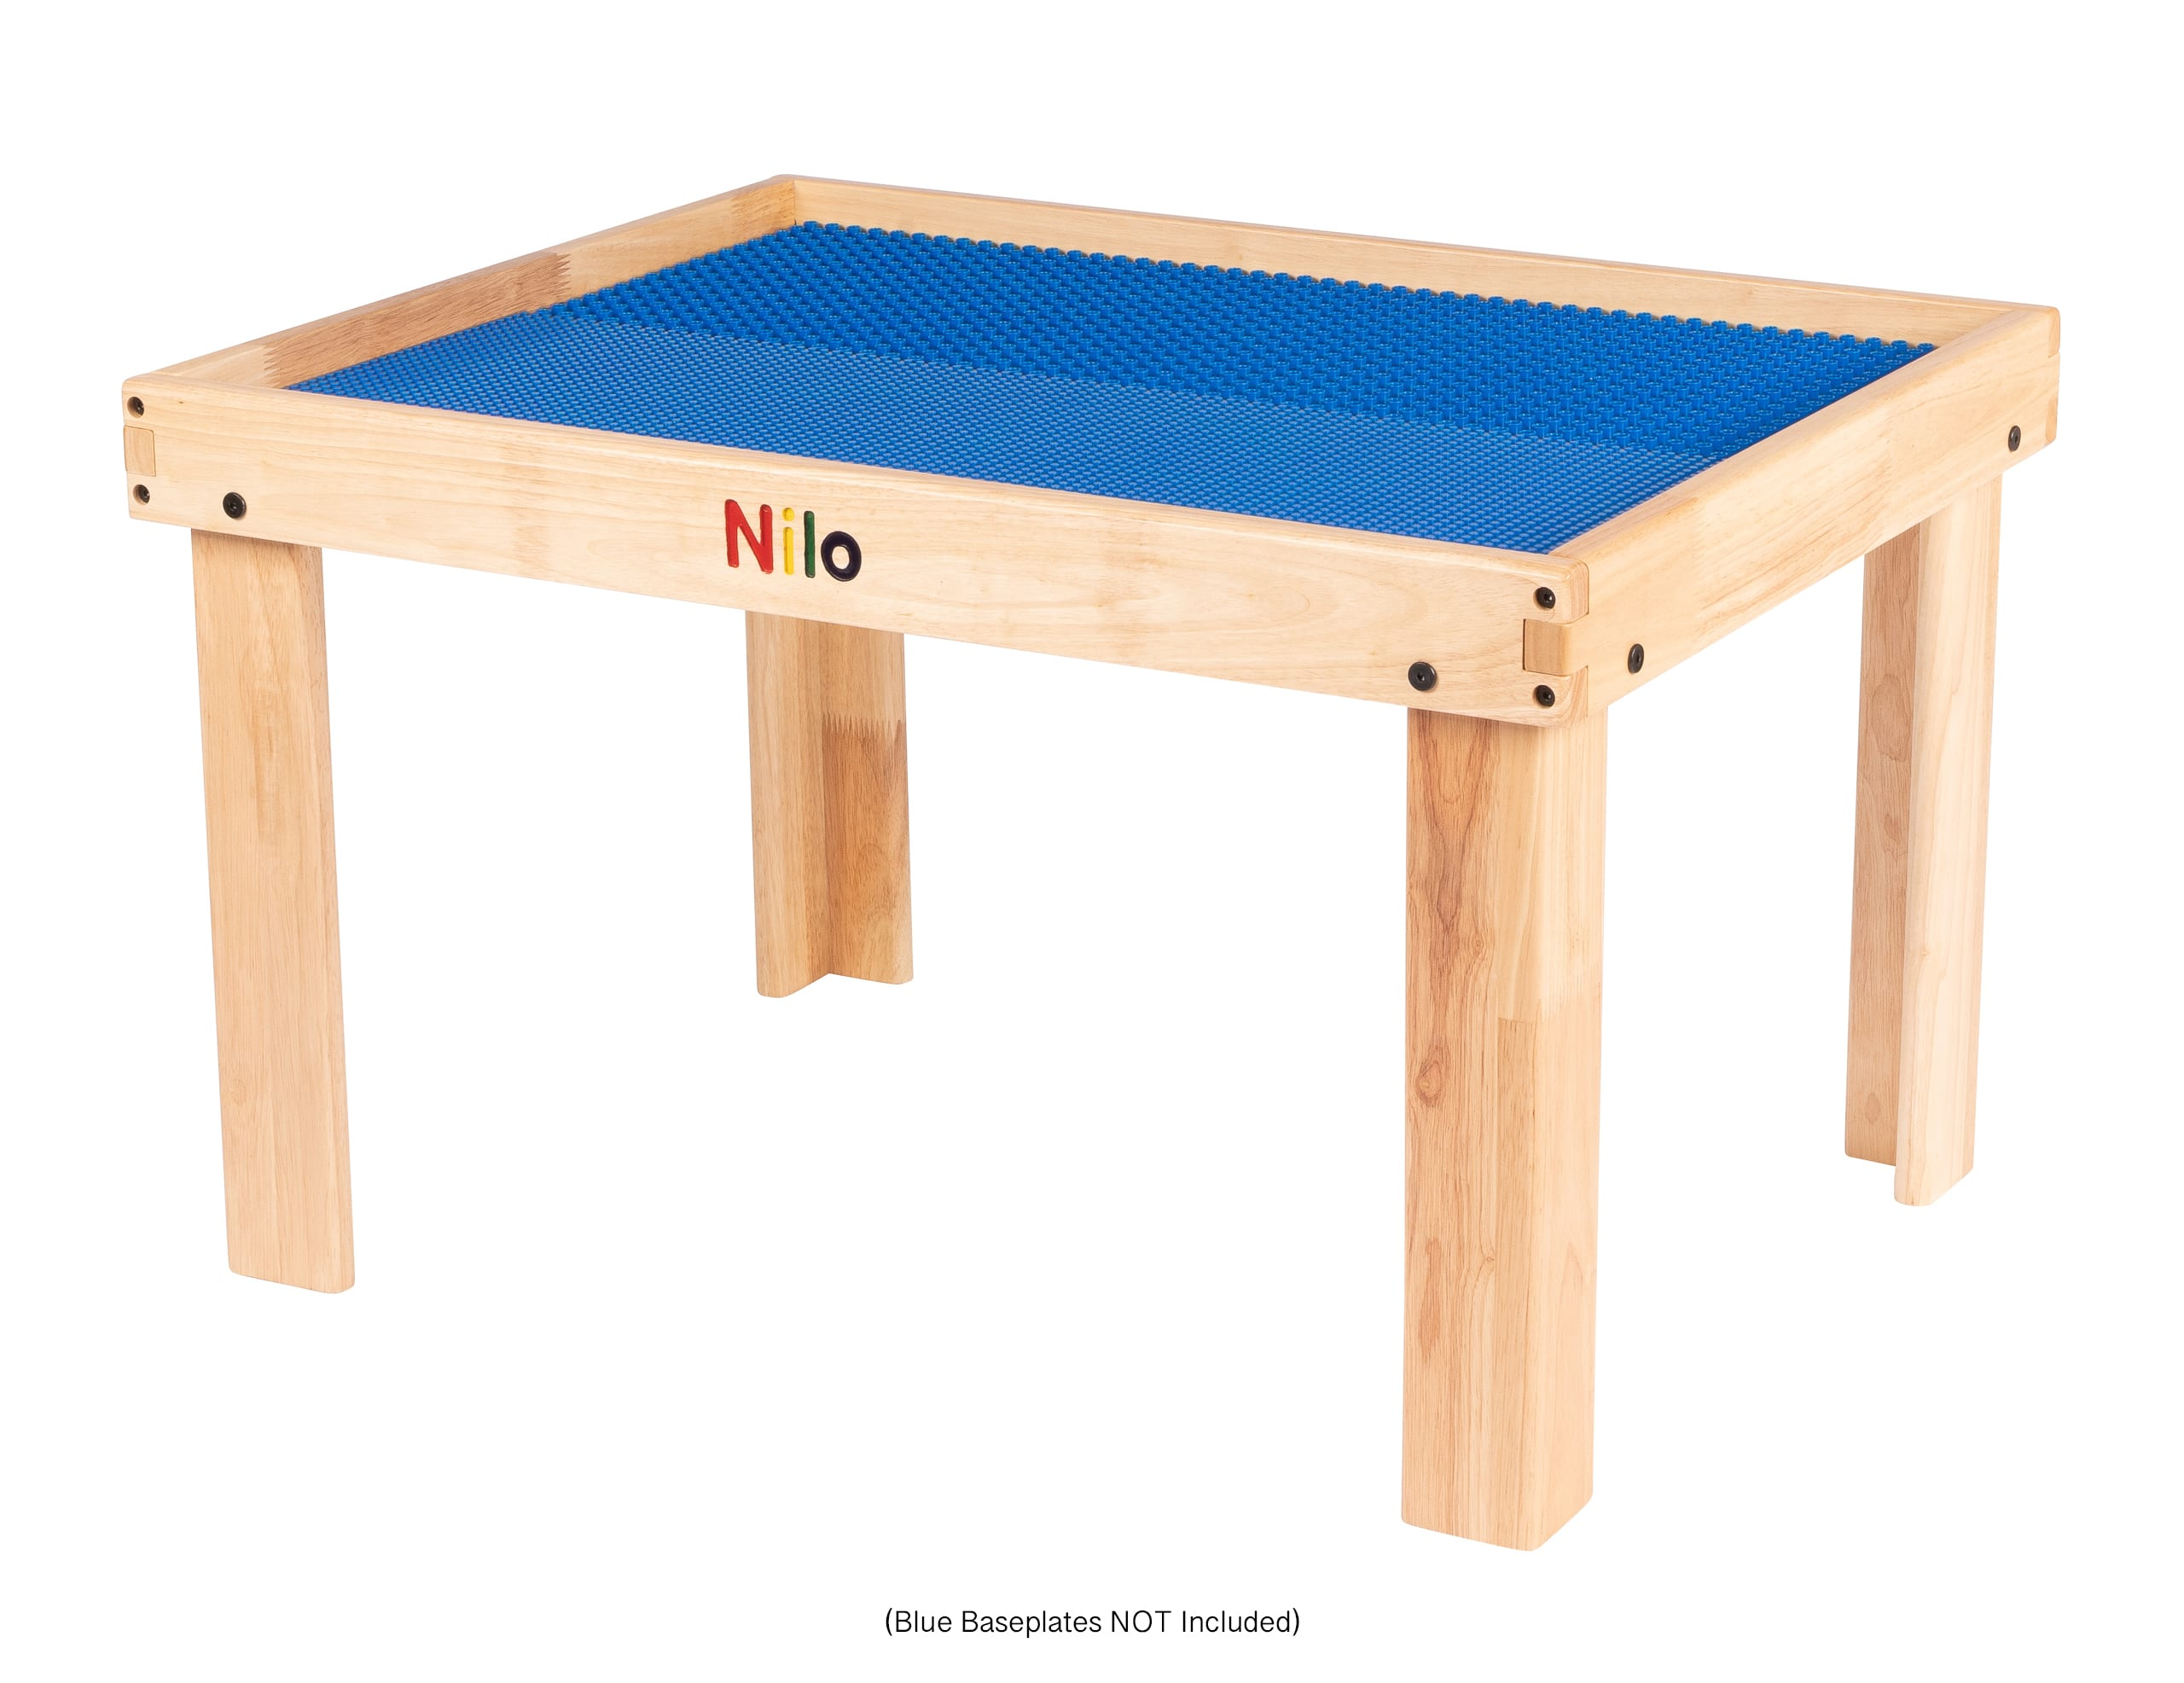 Small Activity Table showing blue baseplates